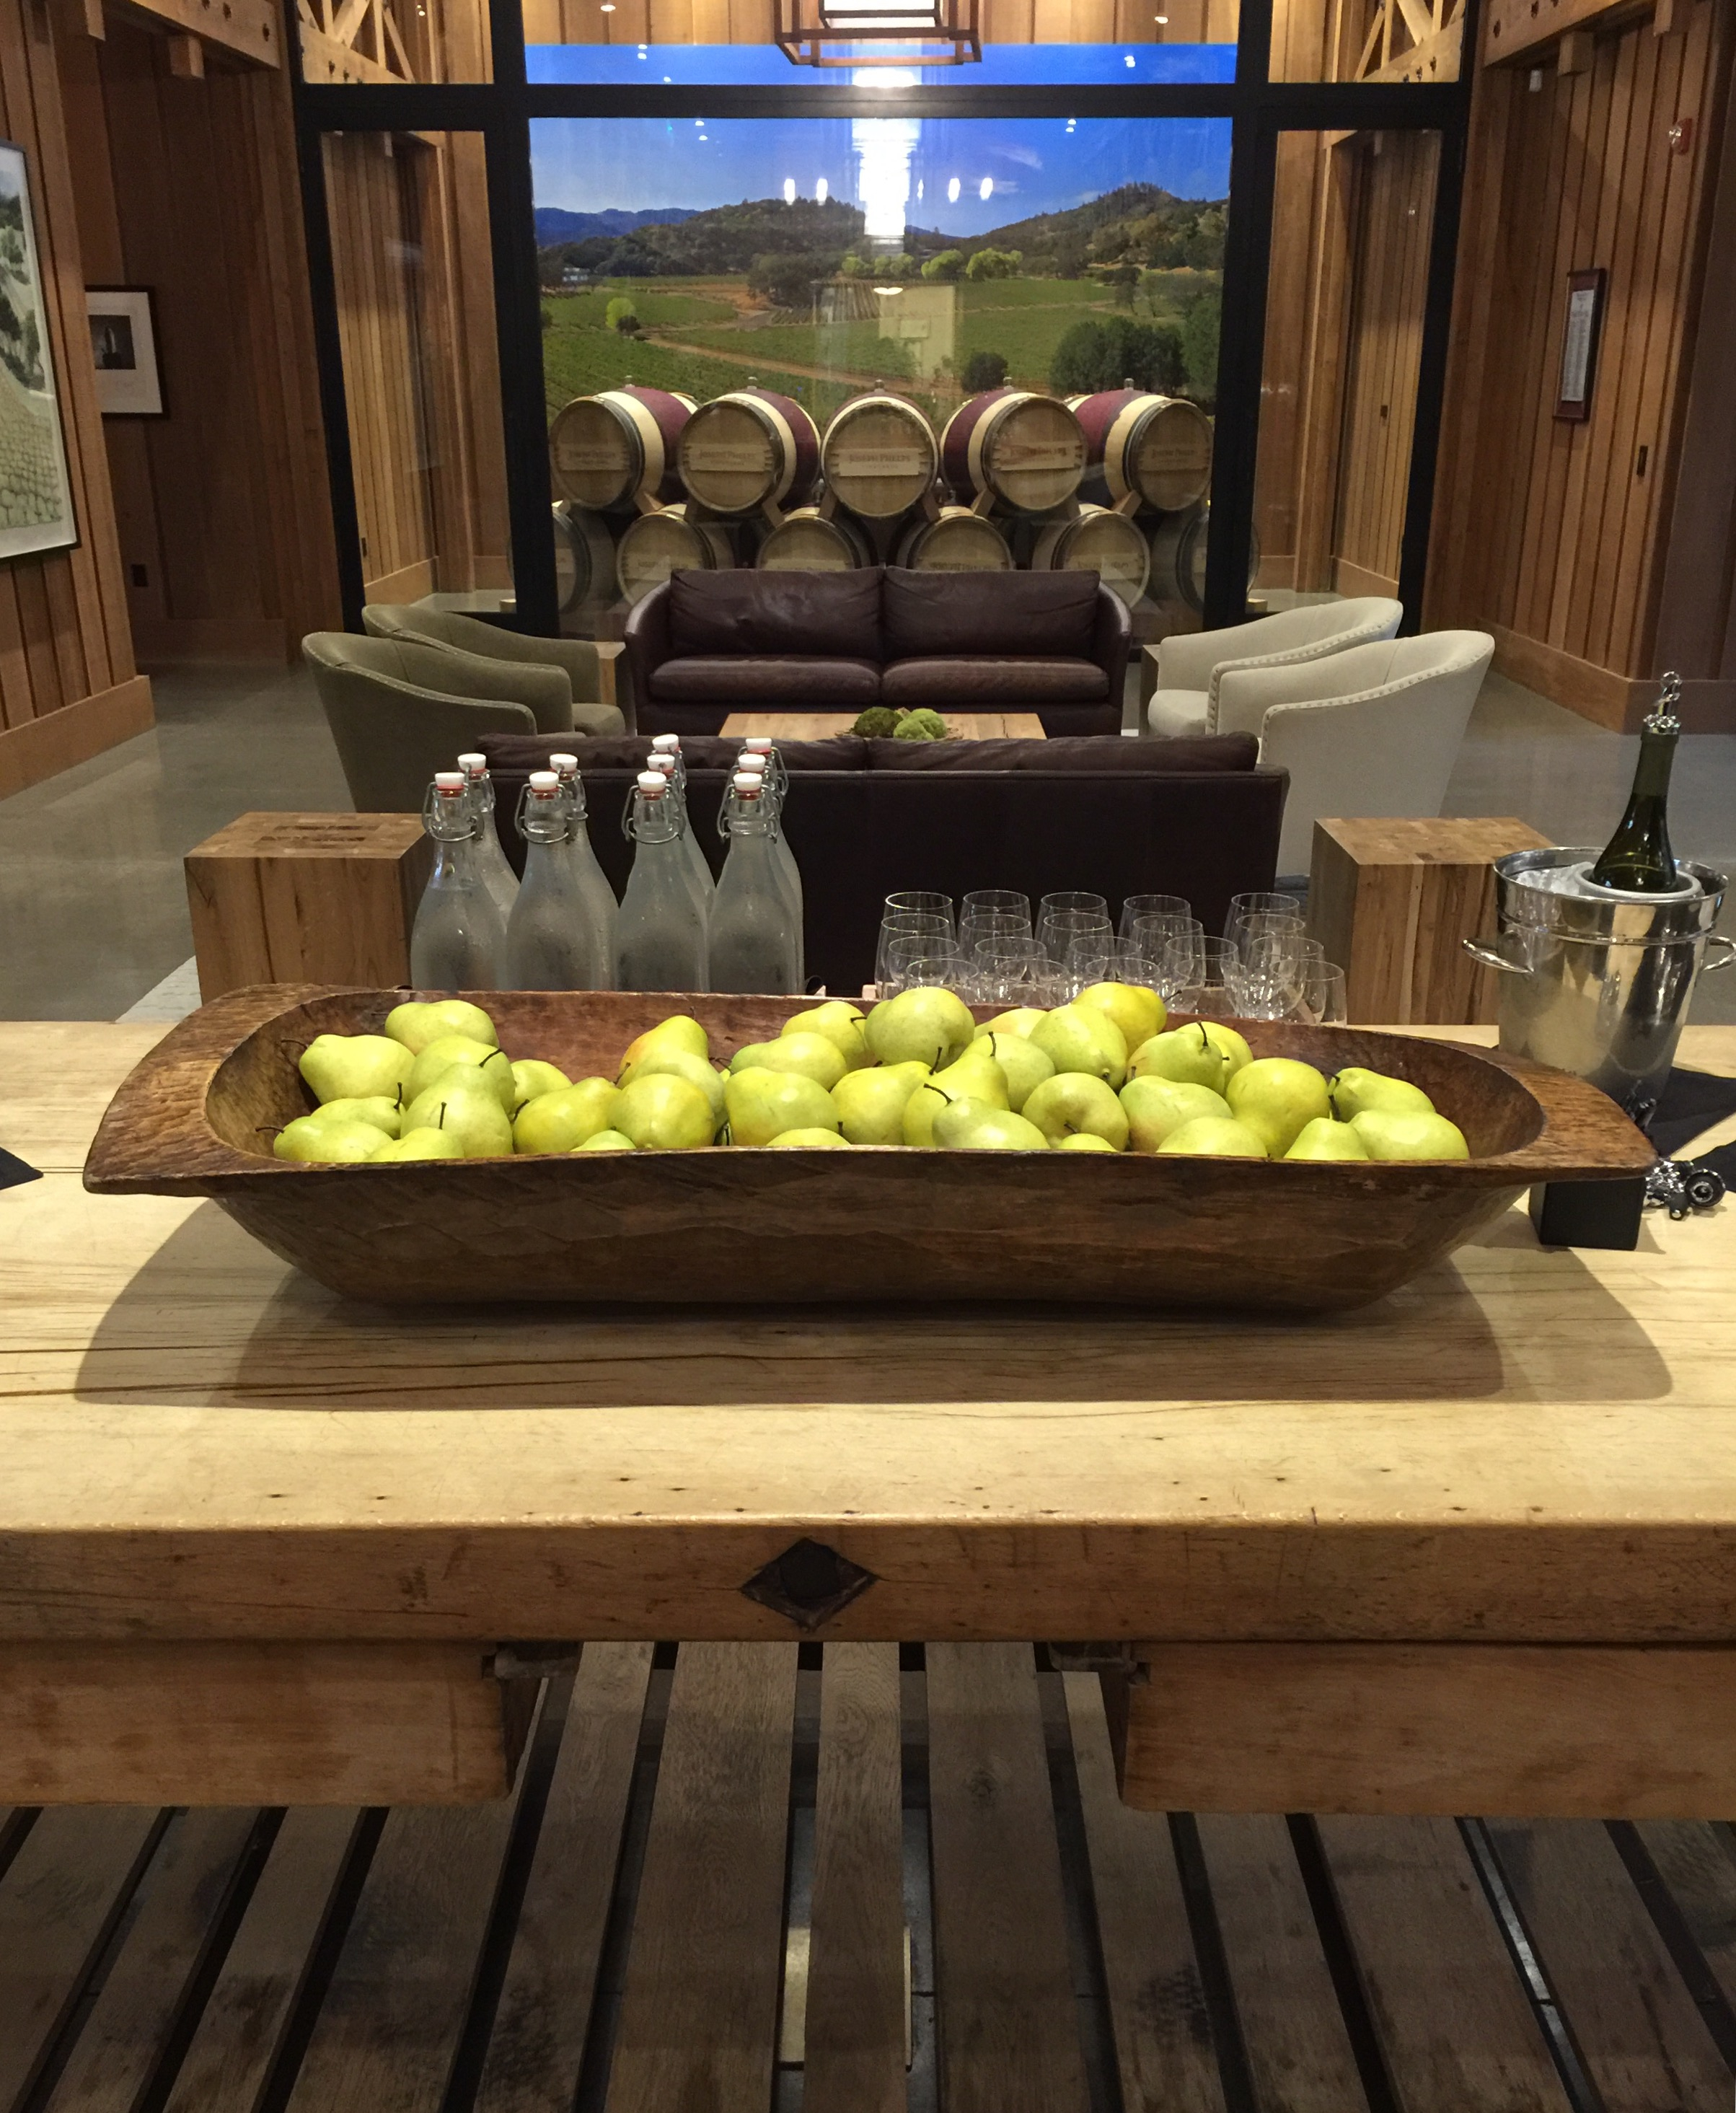 The Great Hall at Joseph Phelps Vineyard Winery with view of The Barrel Room